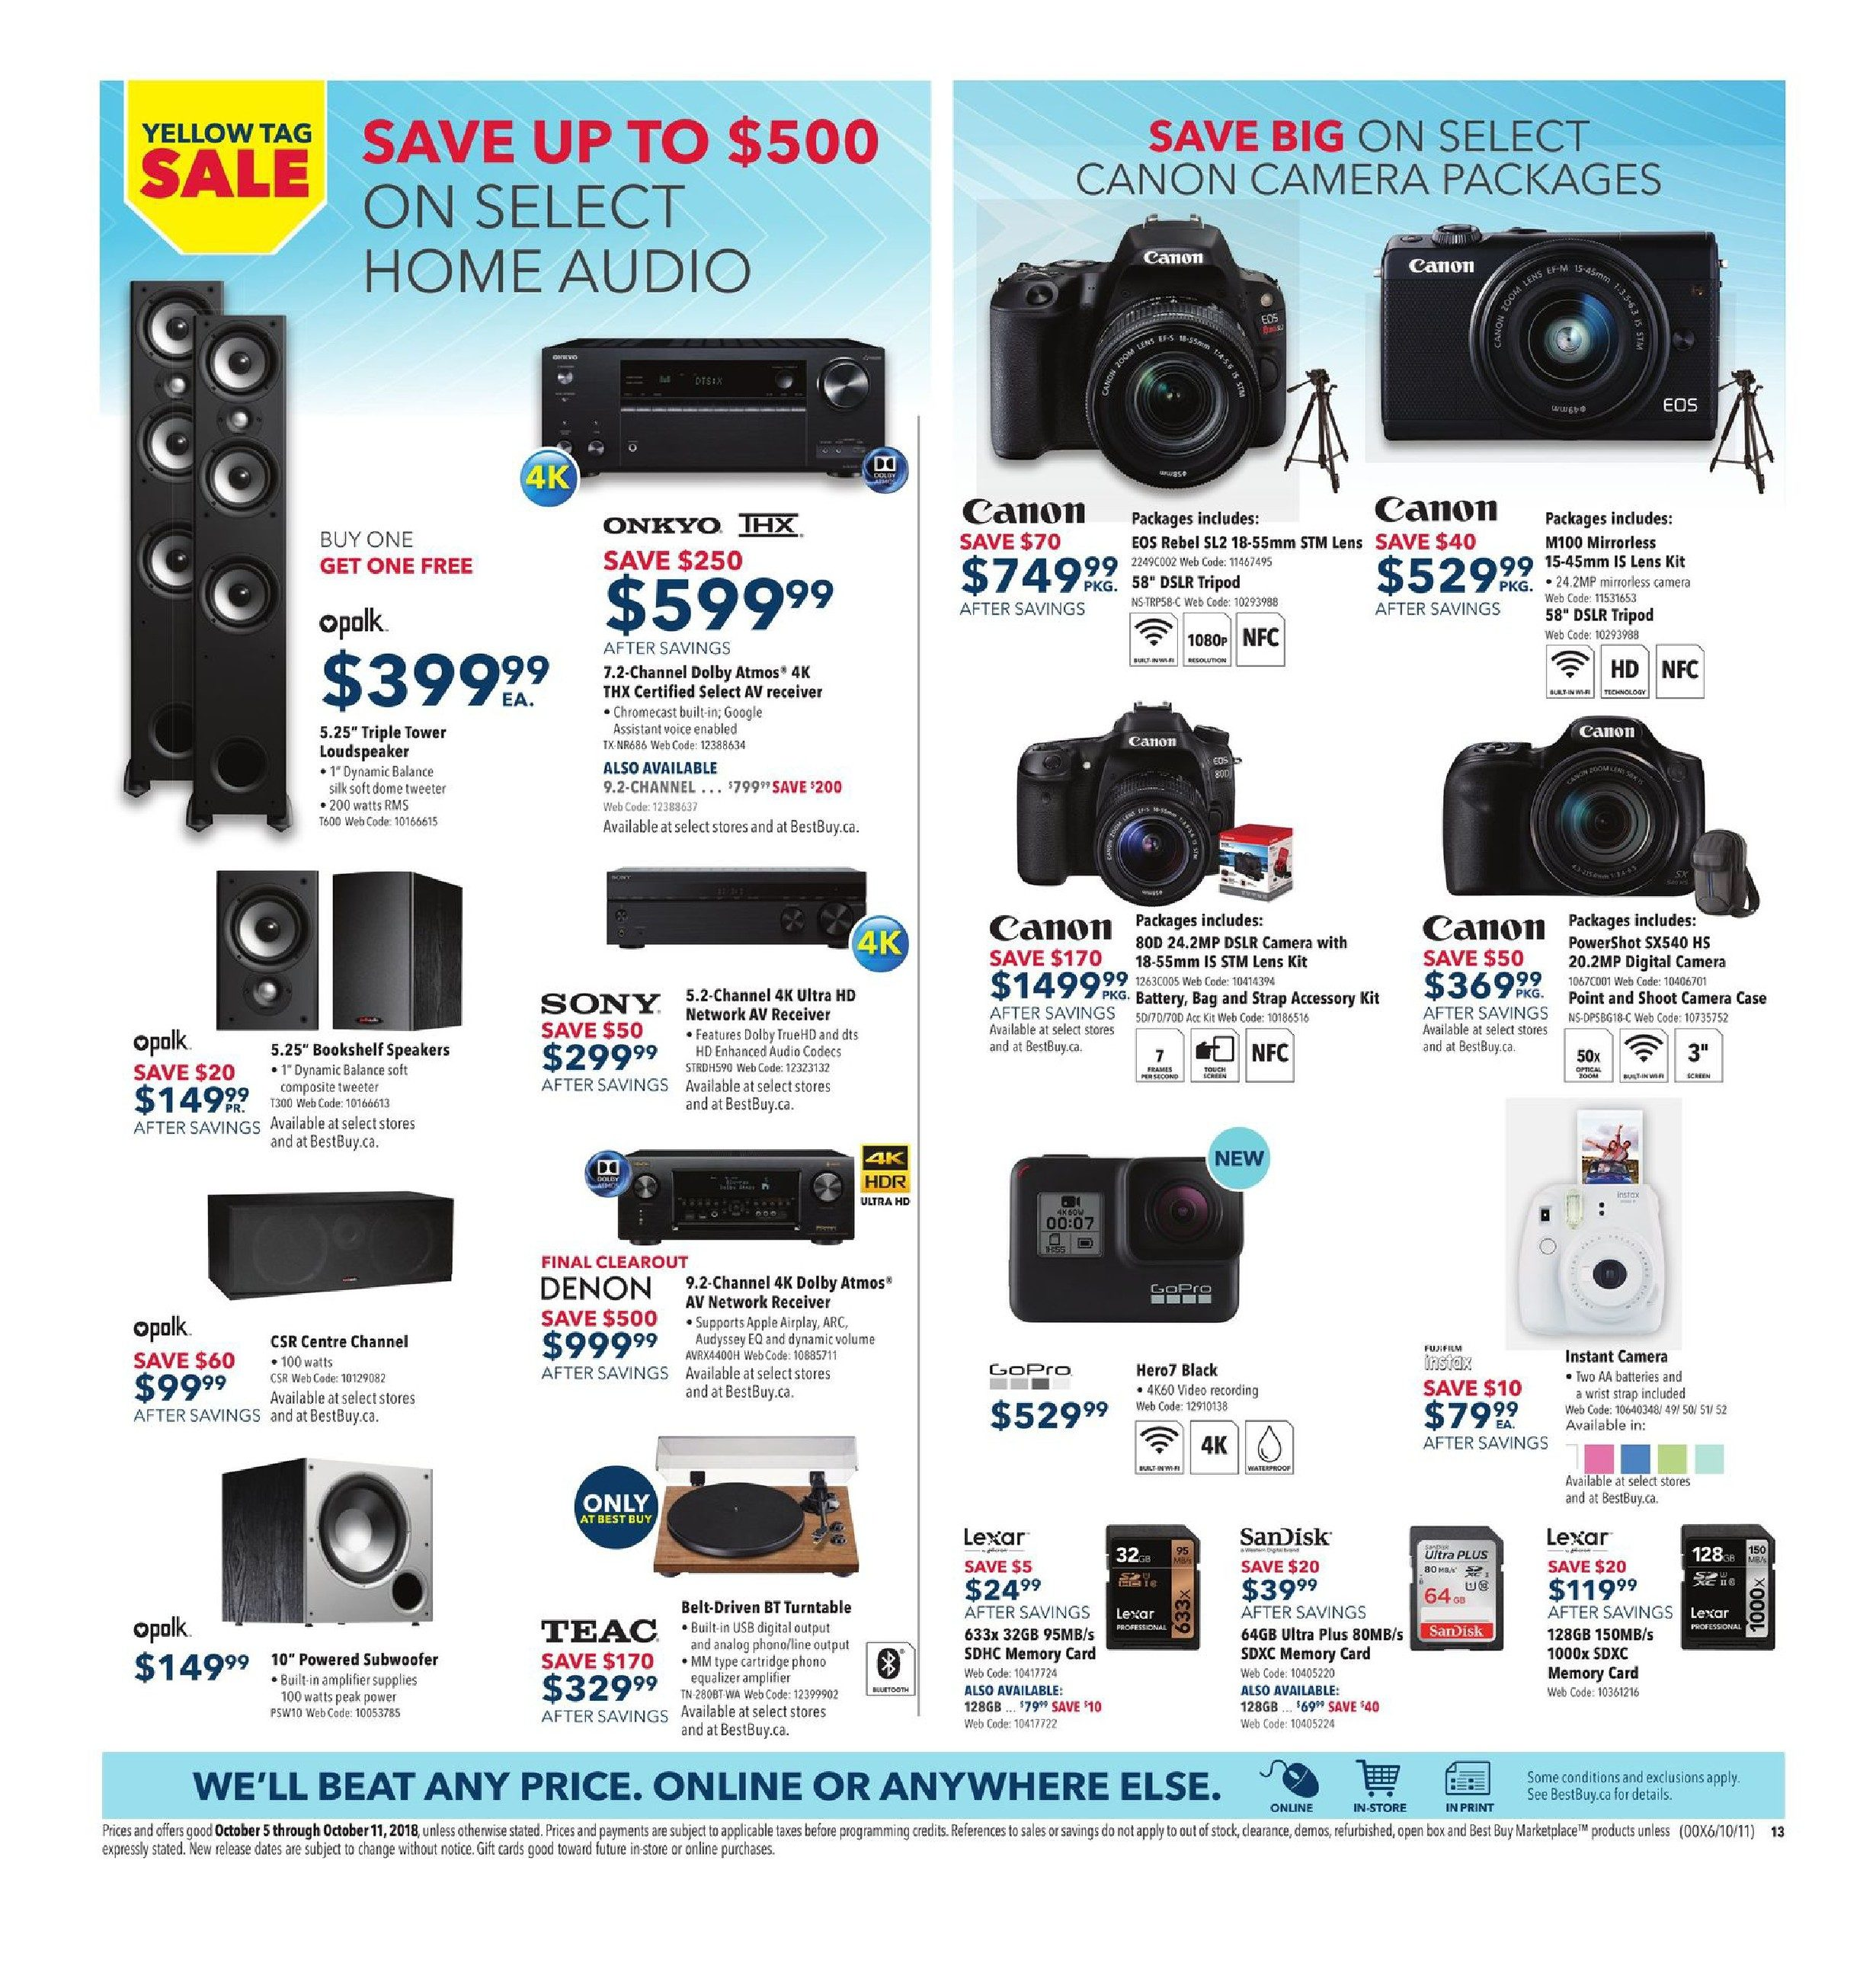 Best Buy Weekly Flyer Yellow Tag Sale Oct 5 11 Nikon 1 J5 Nikkor Kamera